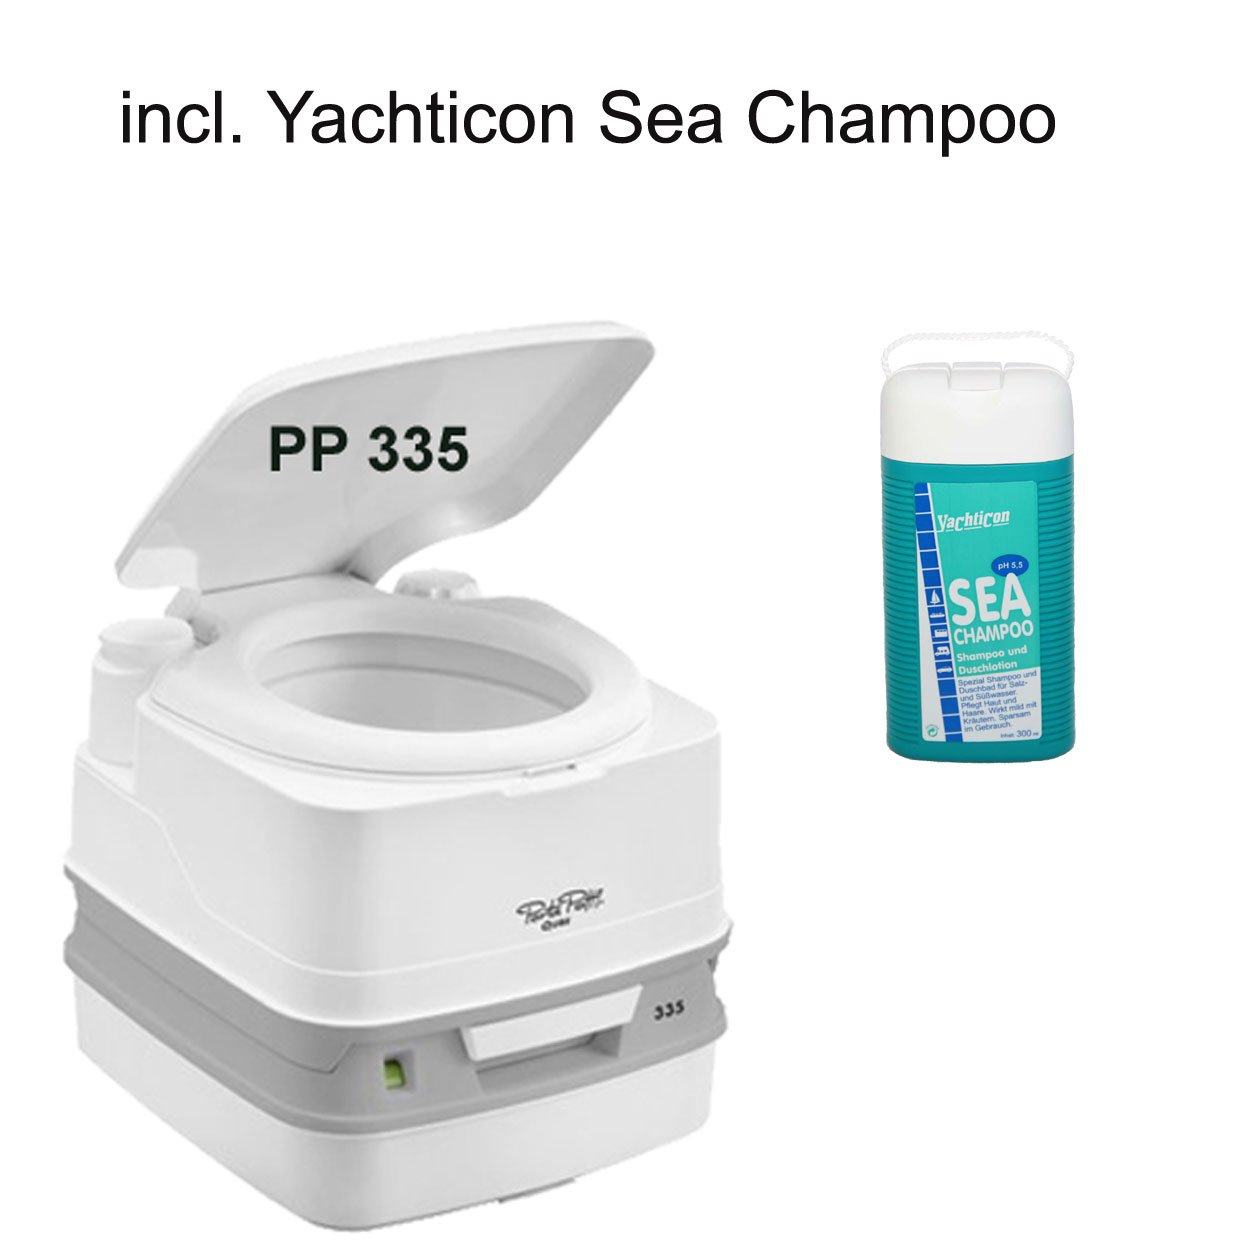 Thetford Porta Potti 335 weiß incl. Yachticon Sea Champoo